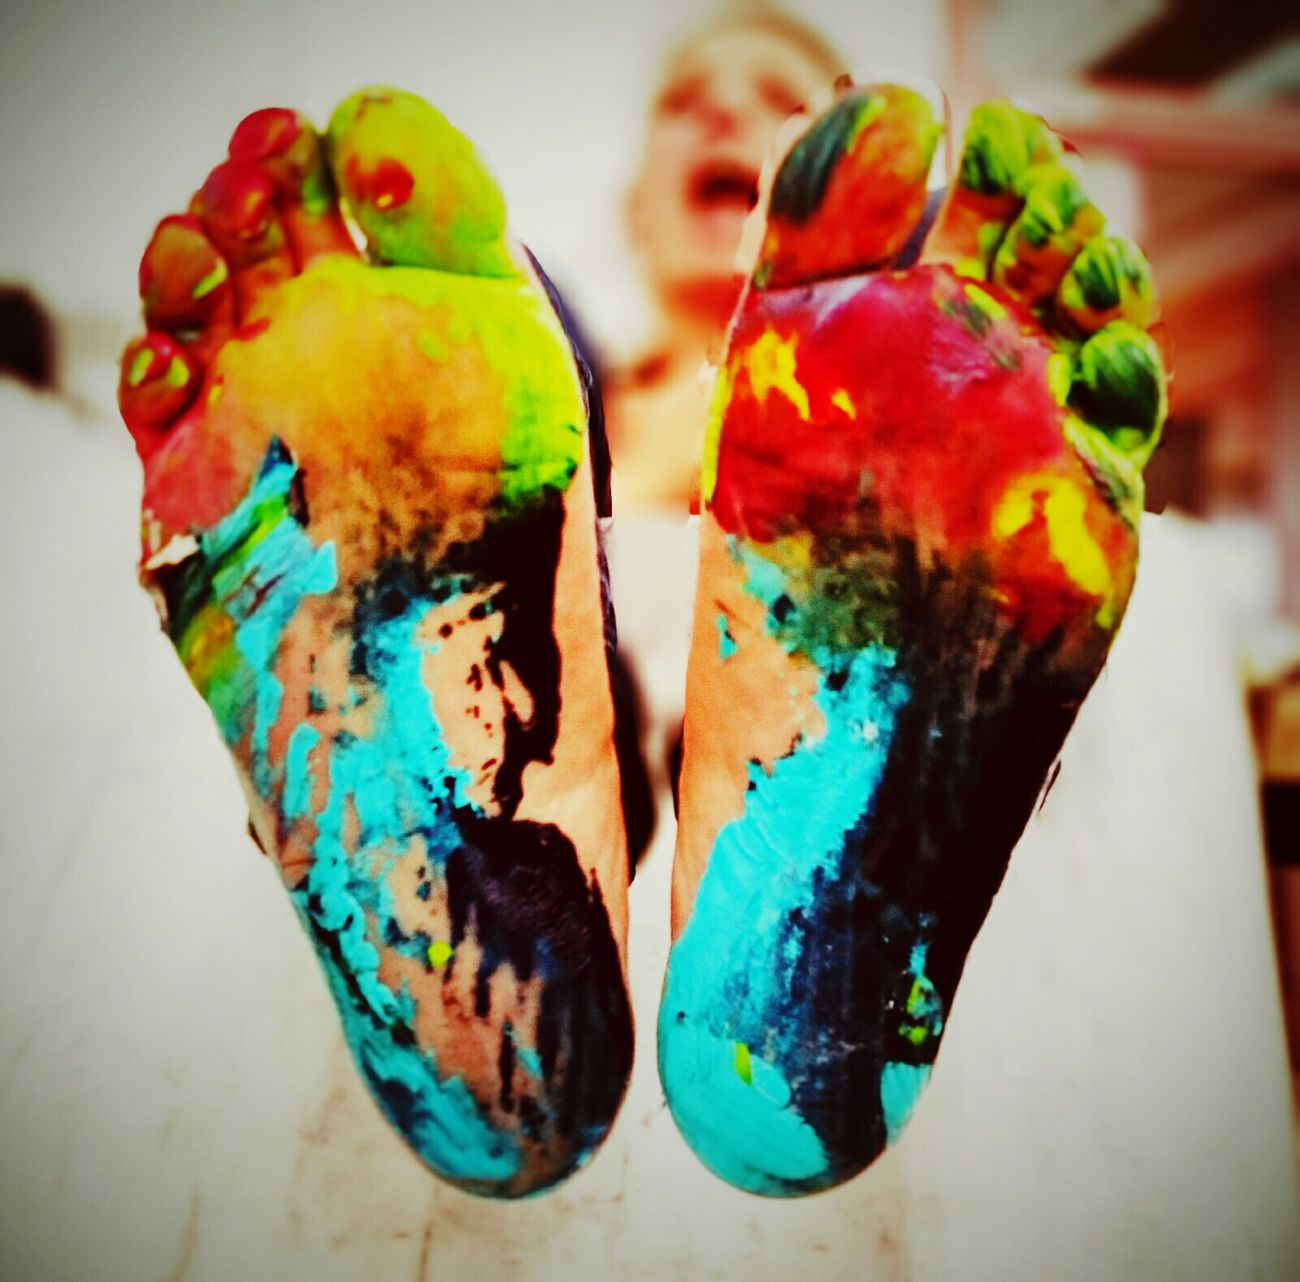 Painting with feet Multi Colored Close-up Indoors  No People Day Vscocam EyeEm Best Shots Capture The Moment Colour Of Life Color Photography Foot Feet NEM Submissions